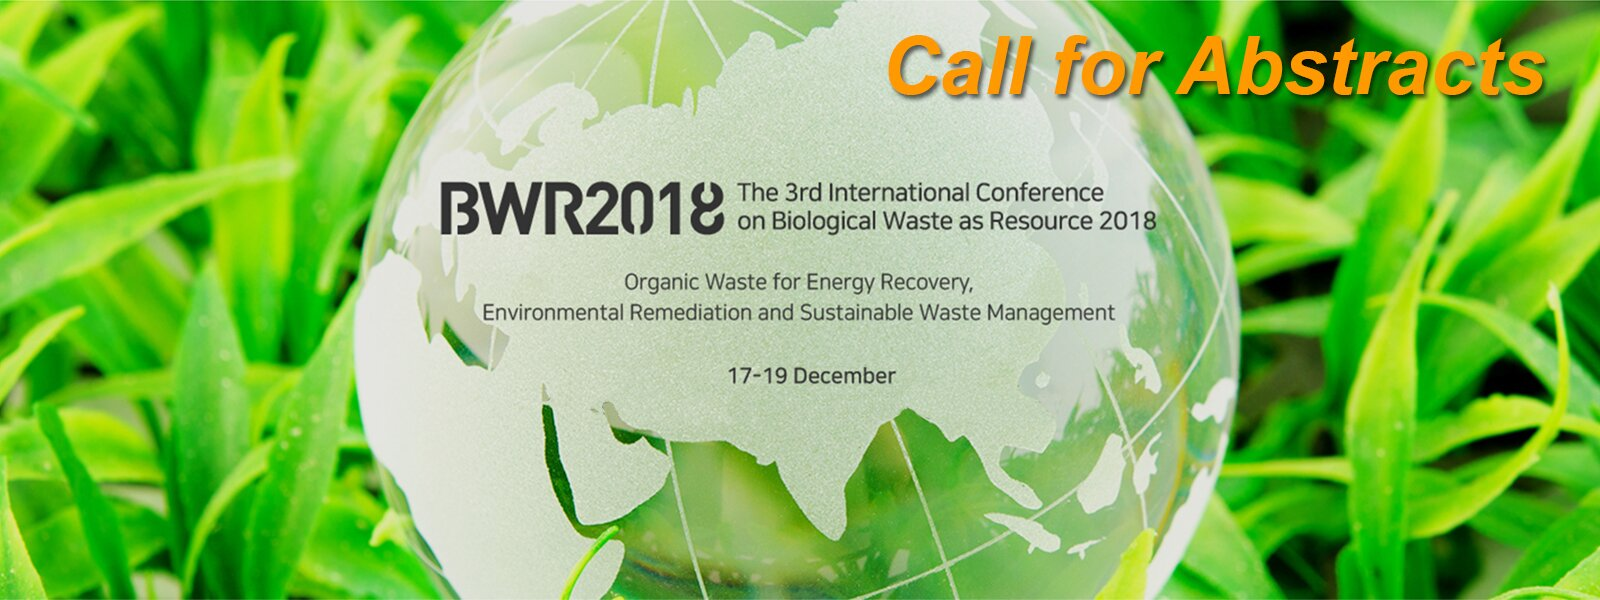 The 3rd International Conference on Biological Waste as Resource 2018